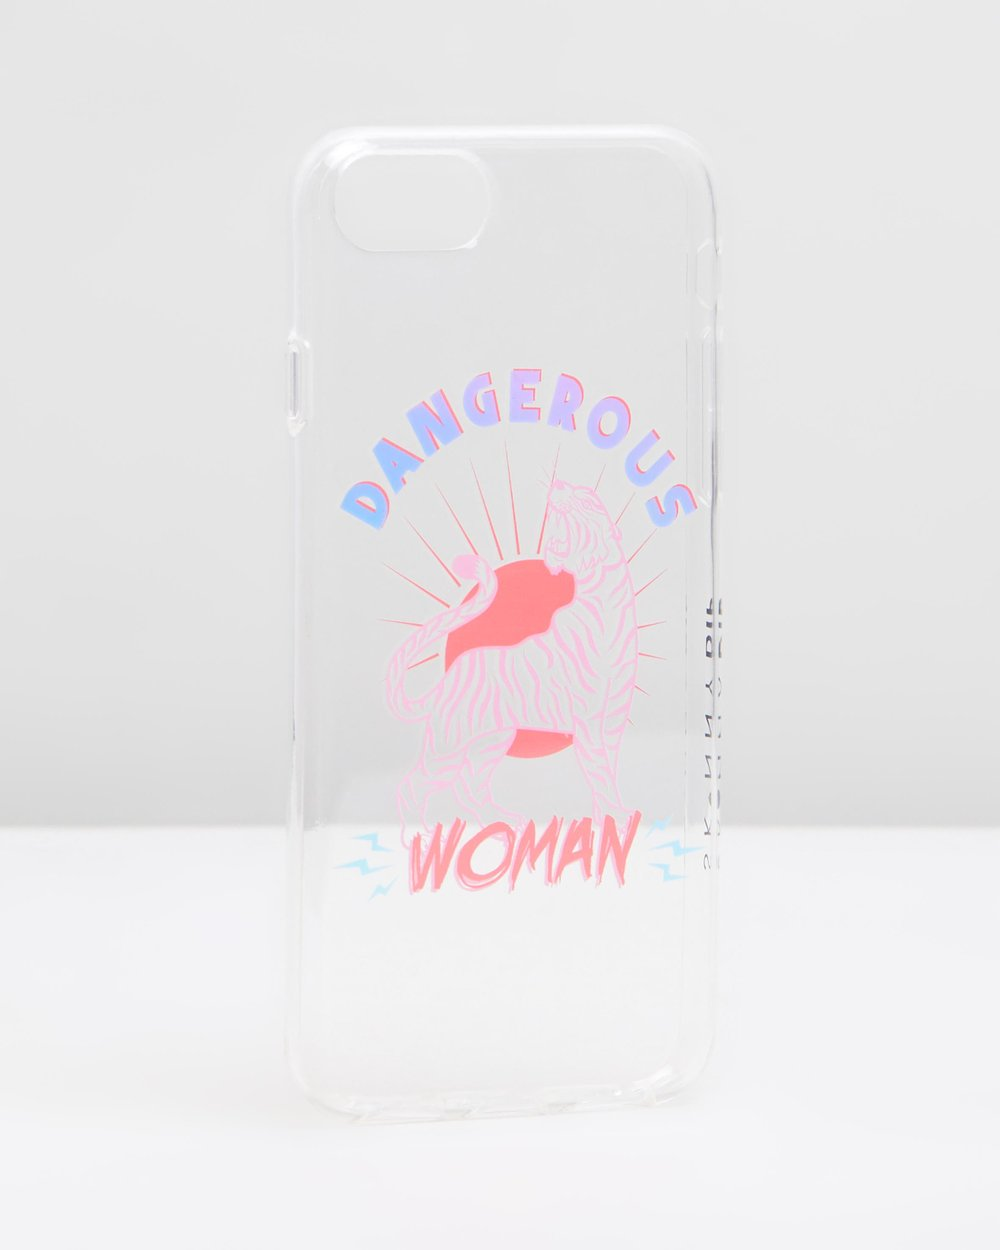 another chance 21e2f 08a8d 6/7/8 iPhone Case